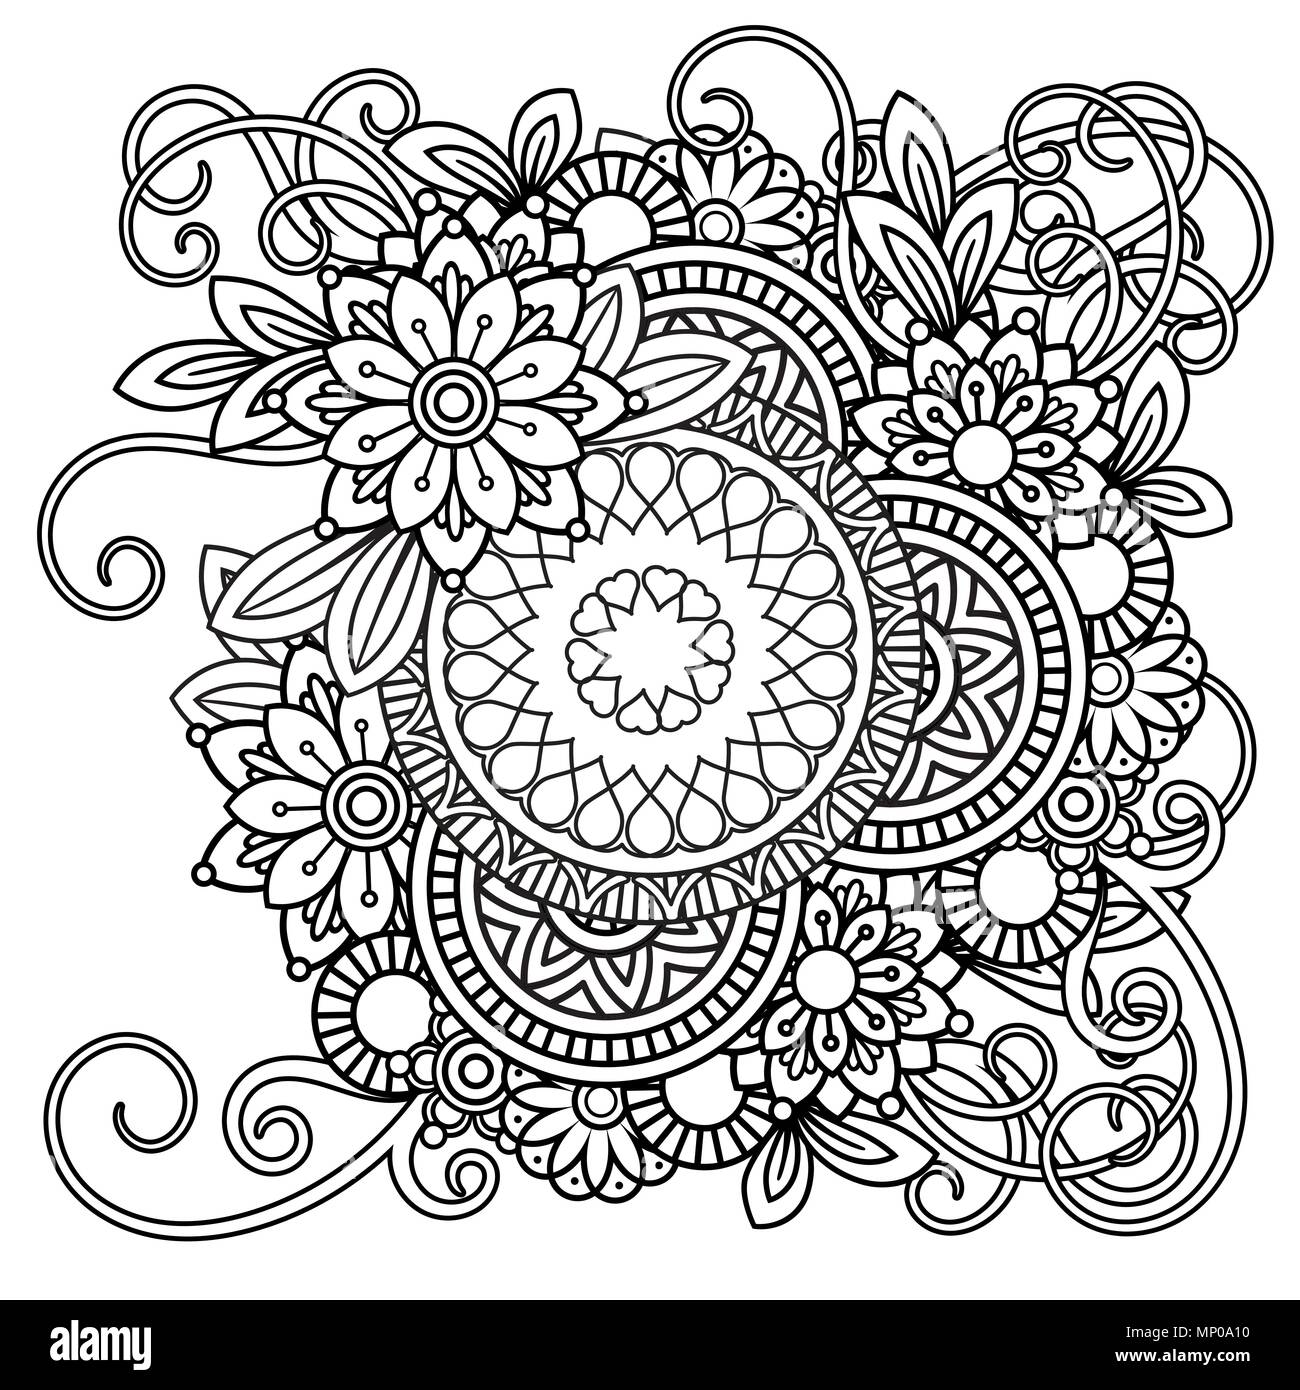 Snake Skull Rose Tattoo Snake n' skull - b&w | Rose coloring pages ... | 1390x1300